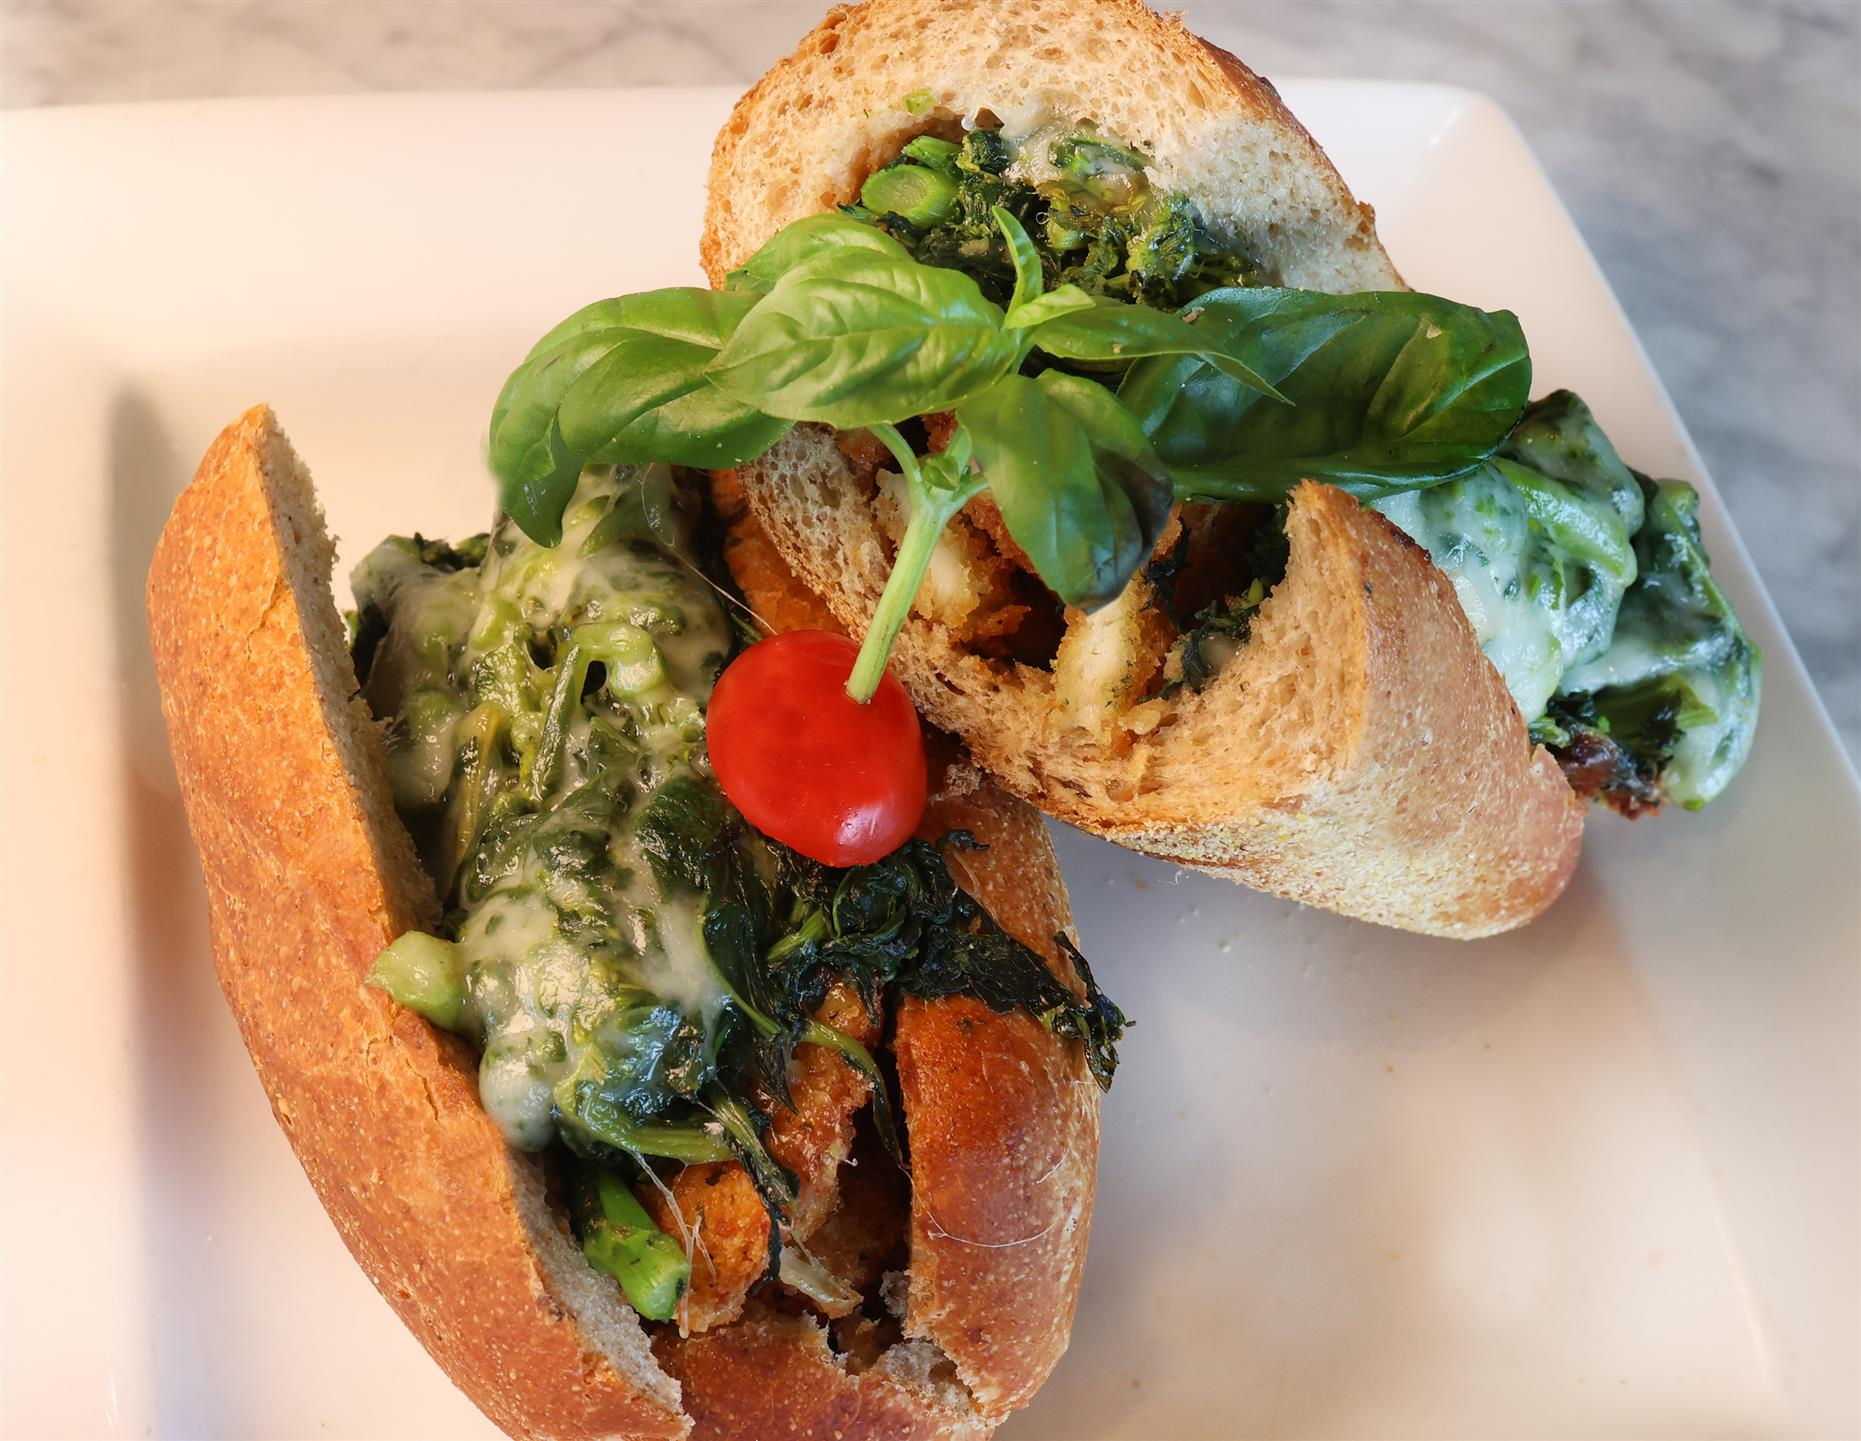 Chicken Pomodoro sandwich with Grilled Chicken, Fresh Baby Spinach, Provolone Cheese, Tomatoes and Roasted Garlic Mayo